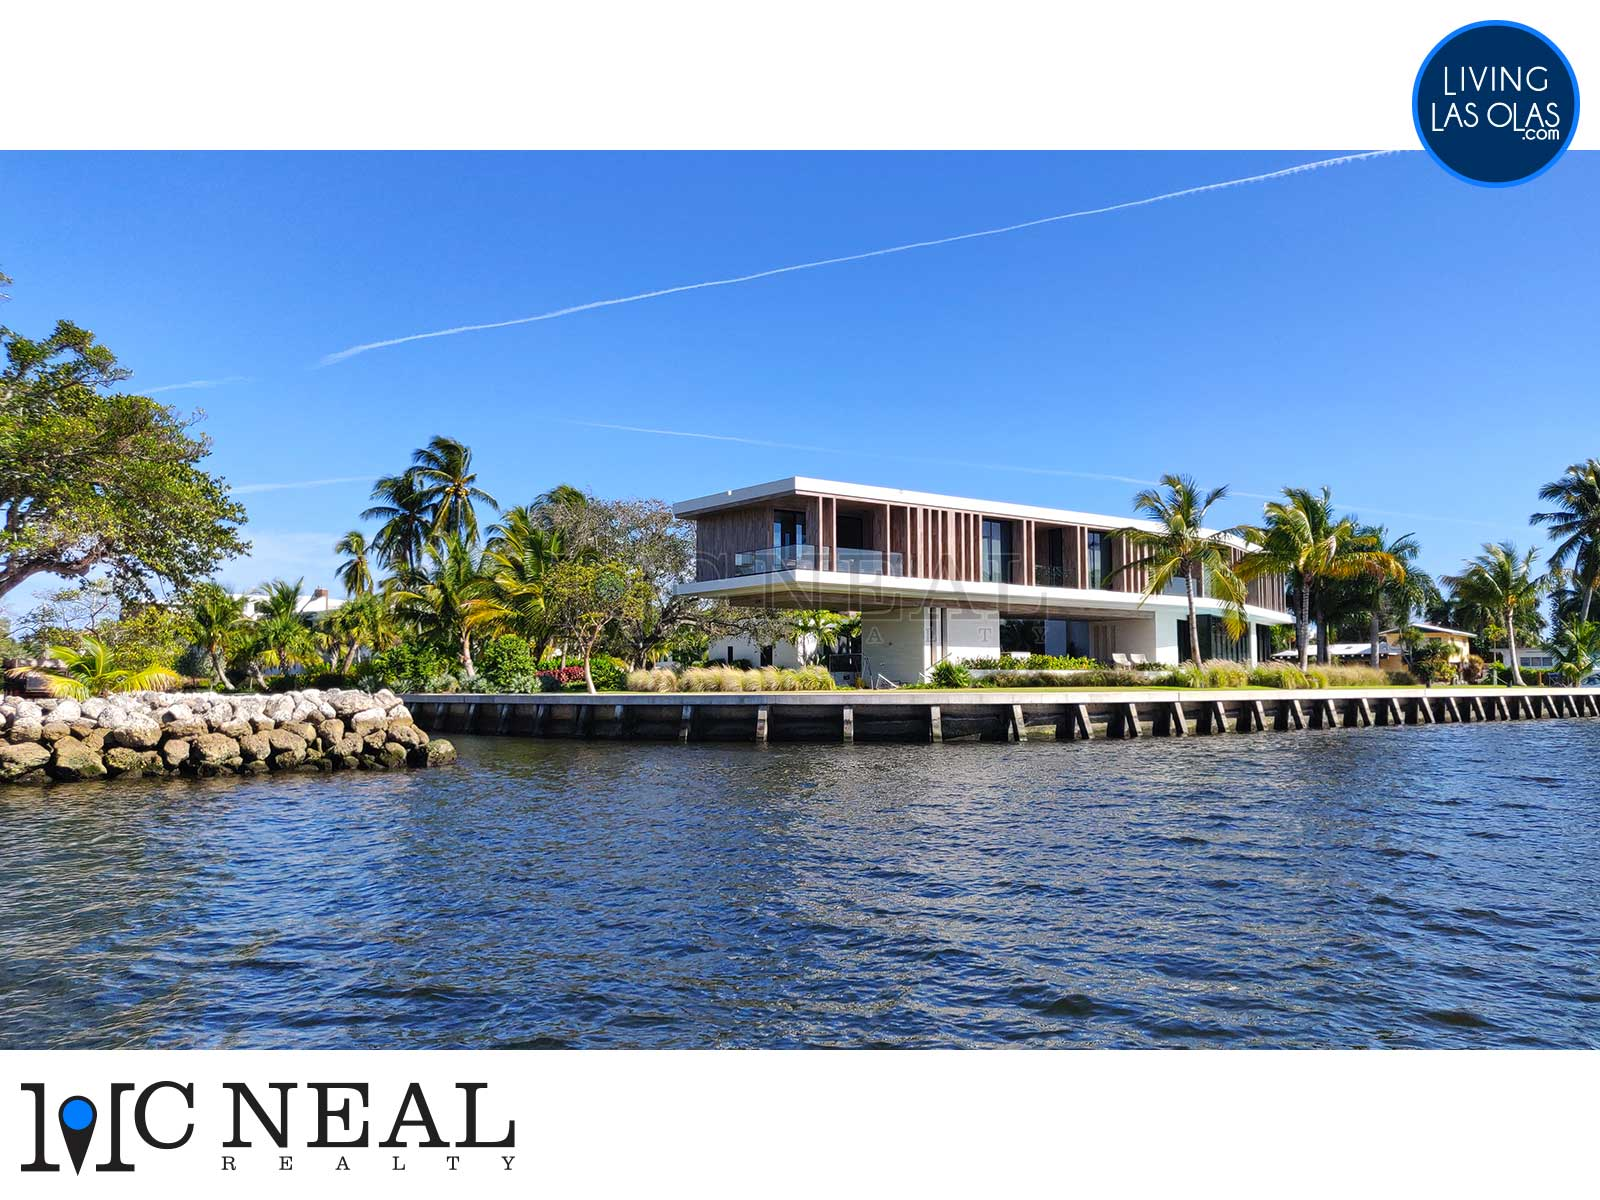 Las Olas Isles Homes Real Estate 05